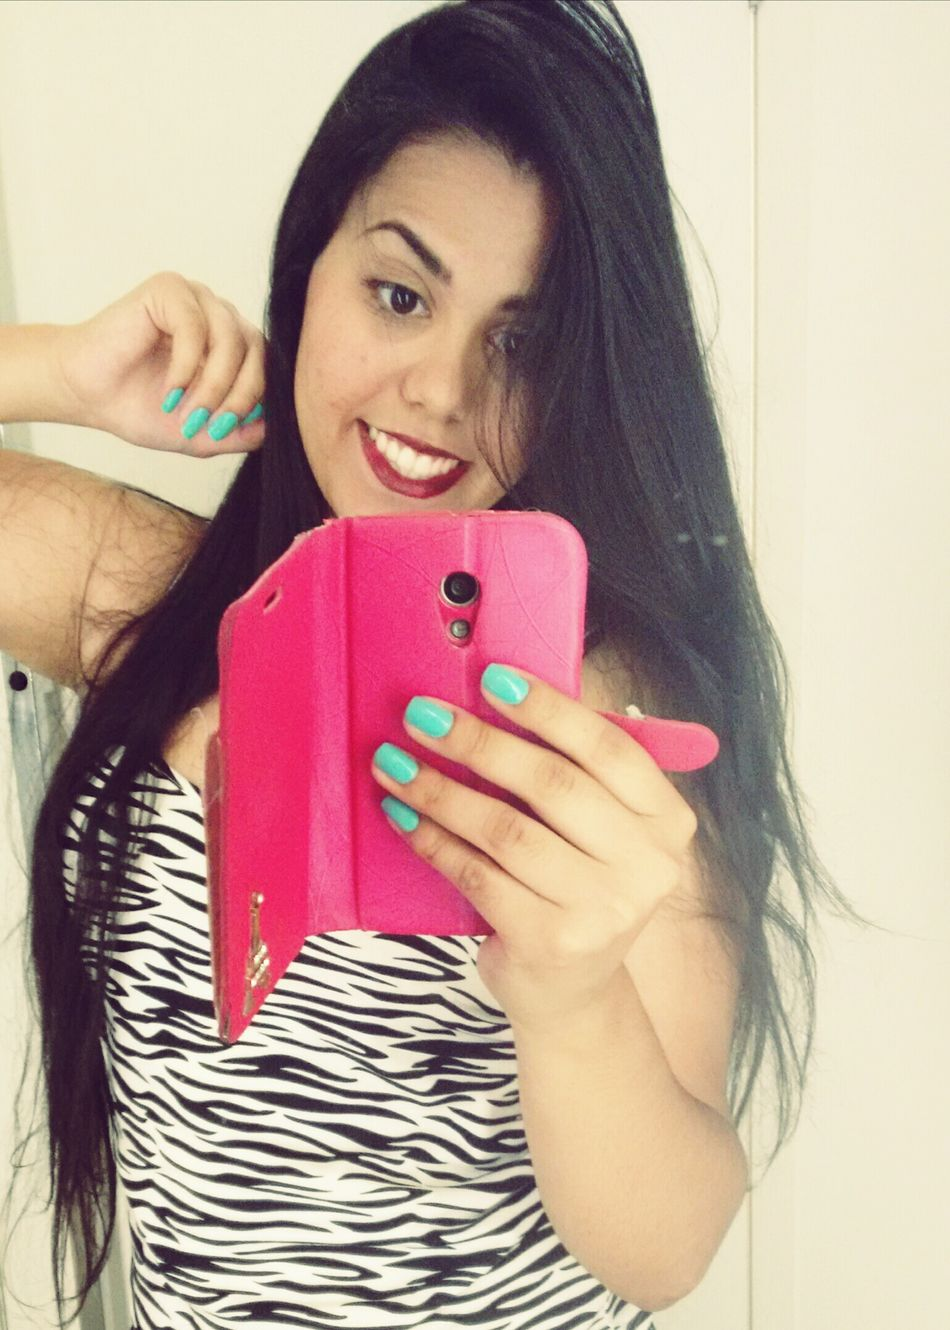 Sorriso DontWorryBeHappy Viver Sonhar